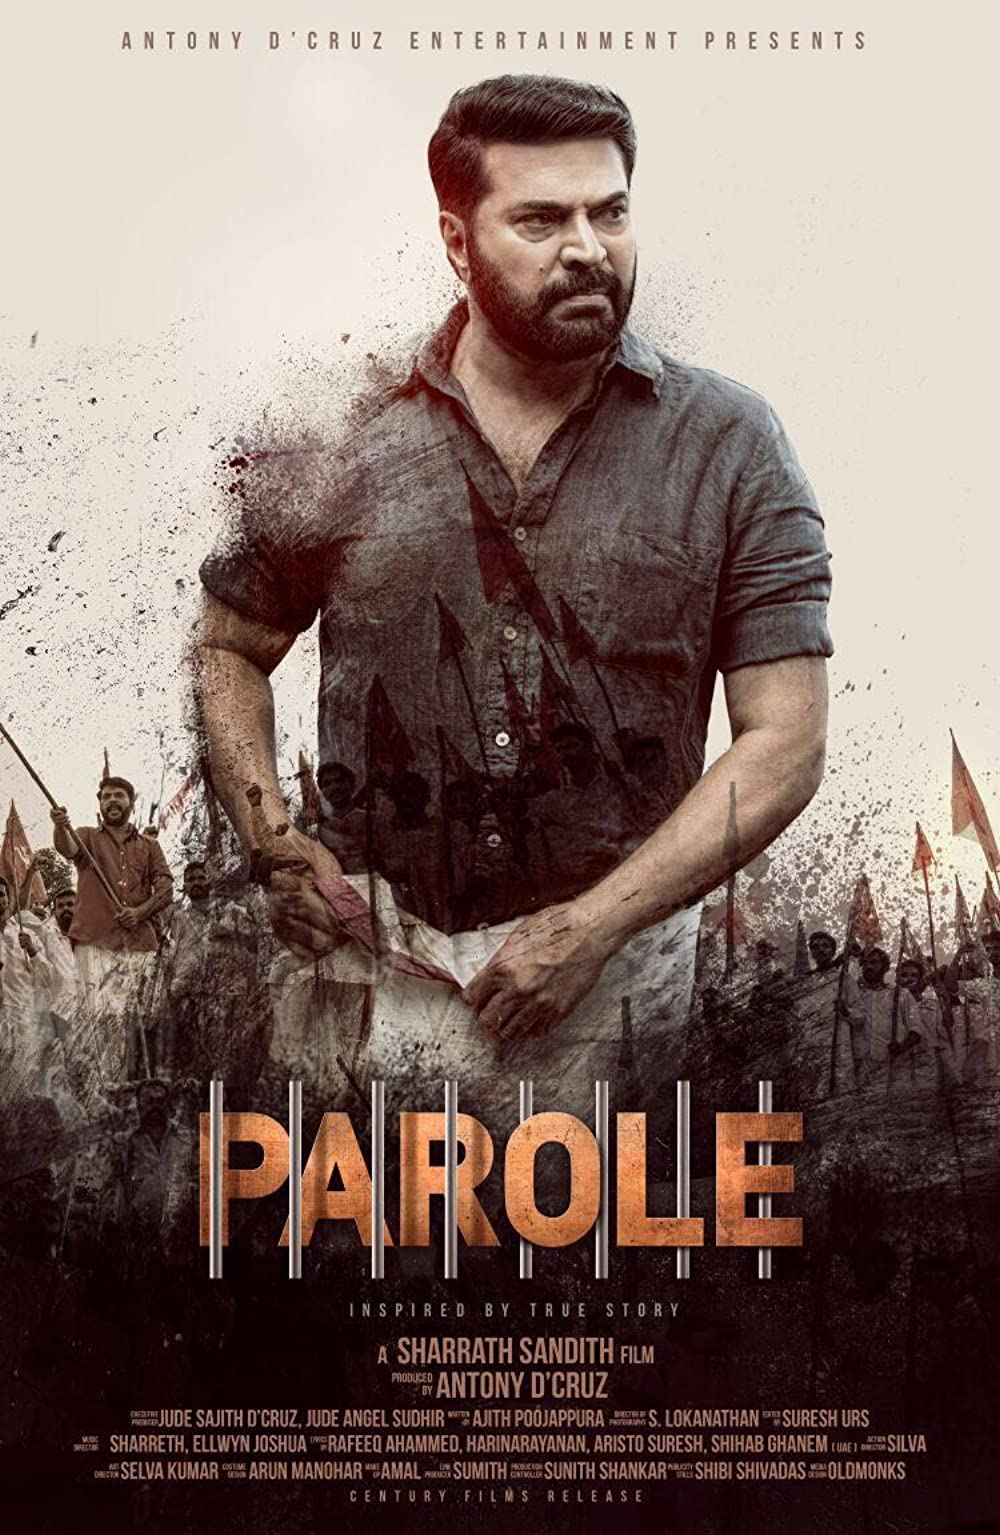 Parol (Parole) 2021 Hindi Dubbed 720p HDRip 872MB Download